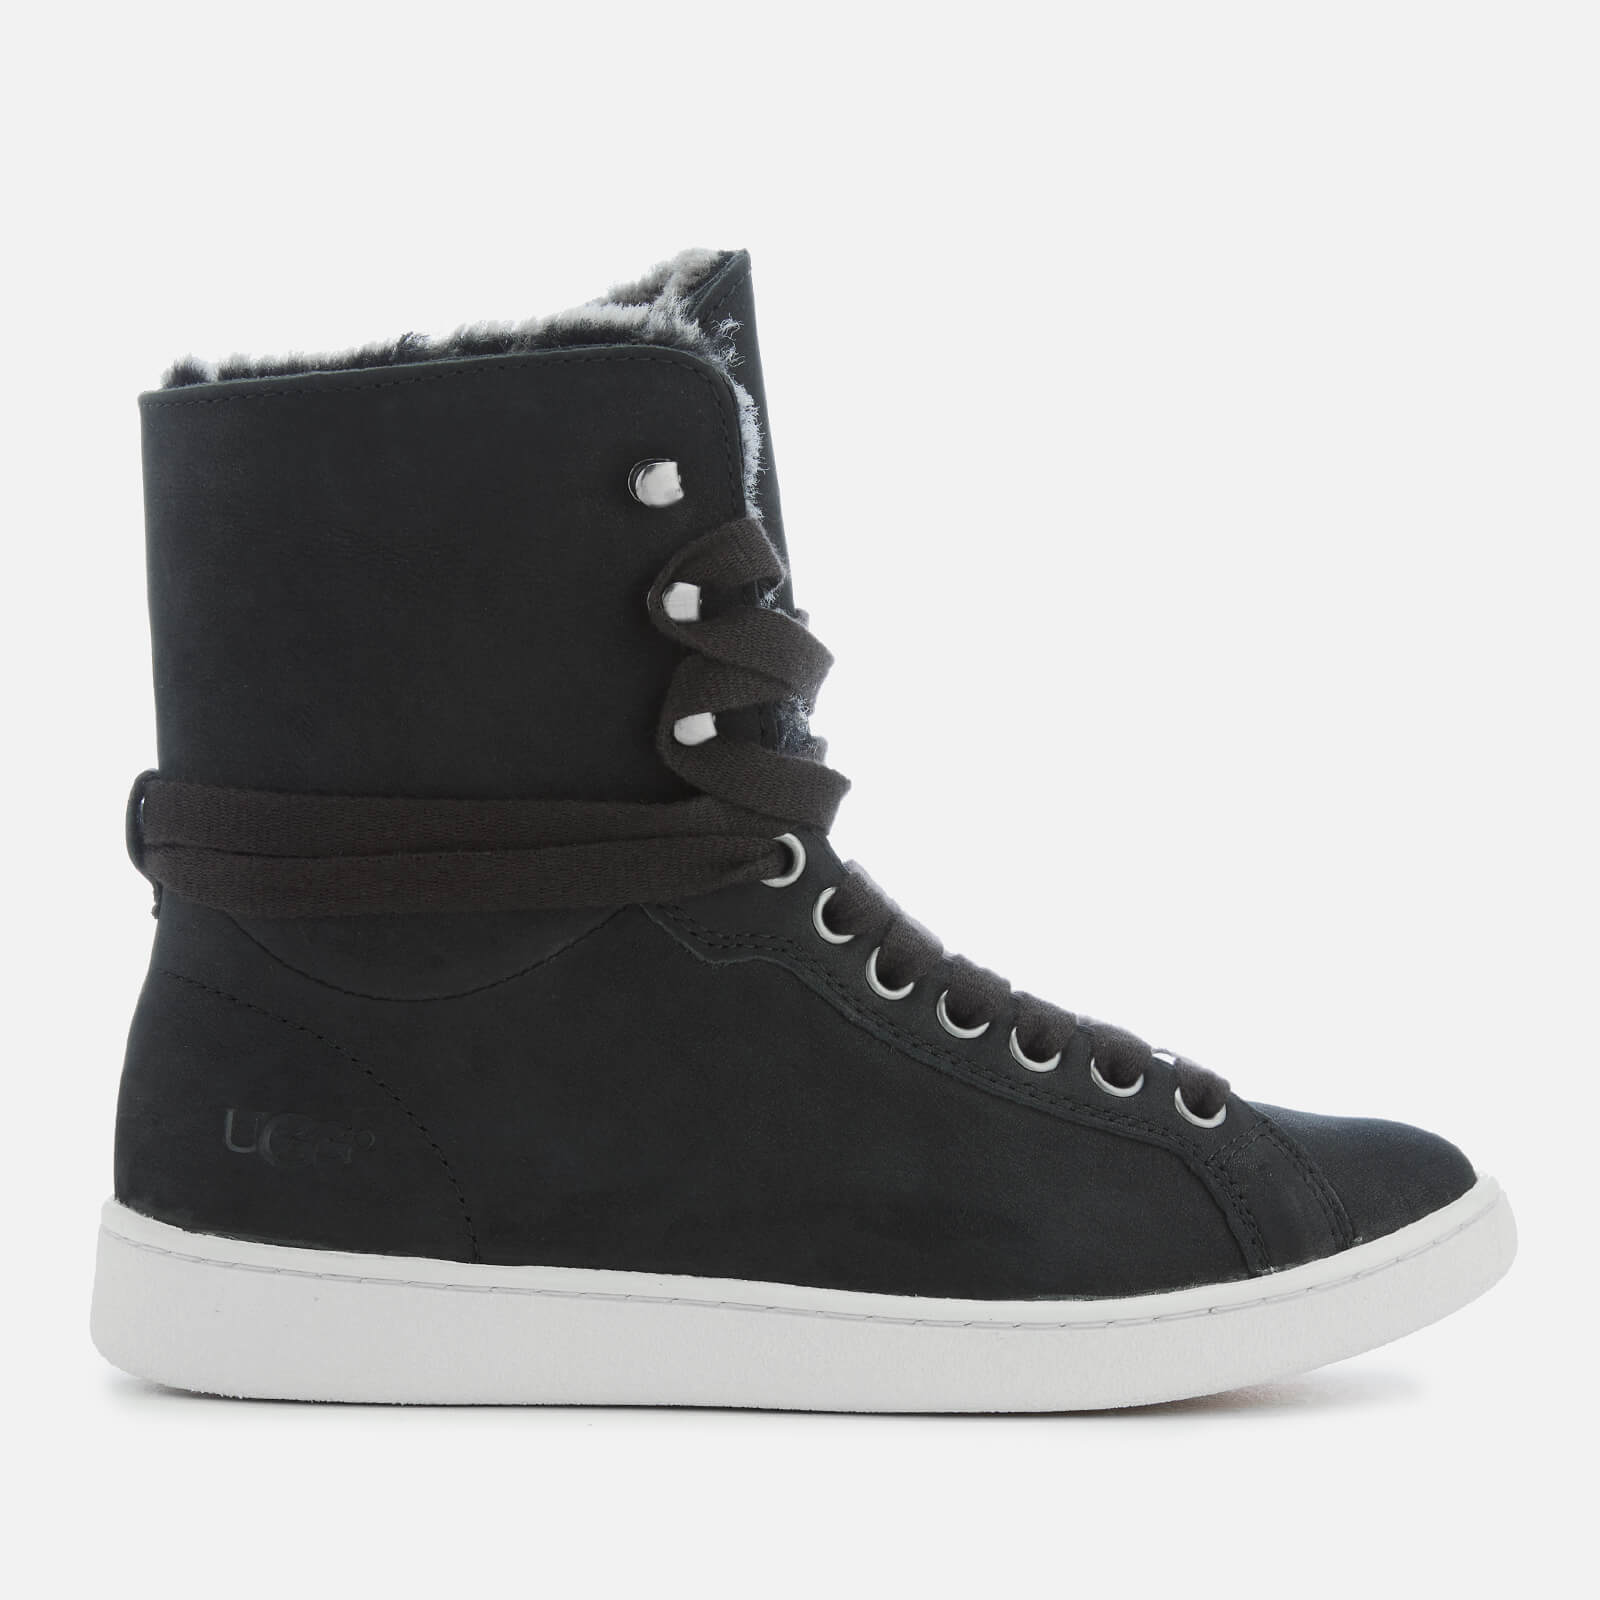 450fa7ee3cc UGG Women's Starlyn Full Grain Leather Fold Over Trainers - Black